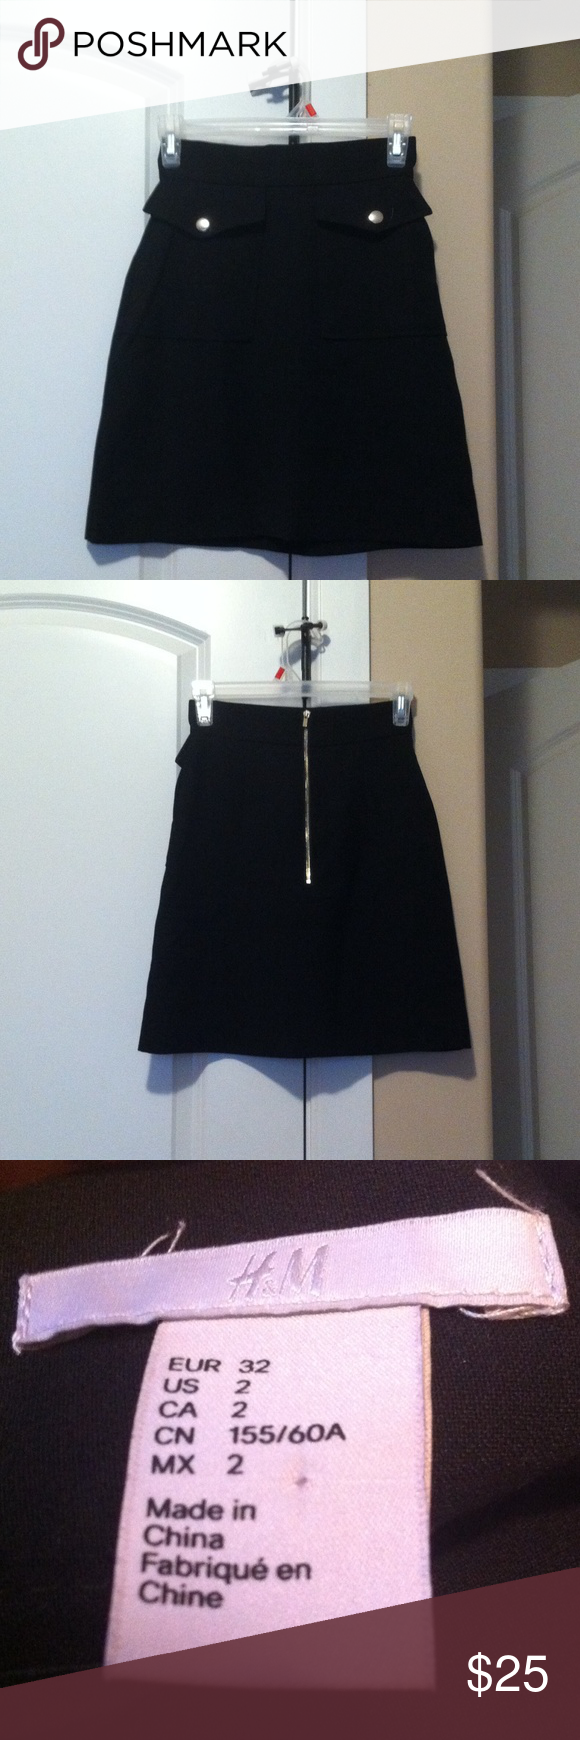 An H&M skirt. This chic H&M skirt comes with two front decorative pockets and a sleek back zipper. It has two discreet usable pockets on the sides of the fake ones. H&M Skirts A-Line or Full